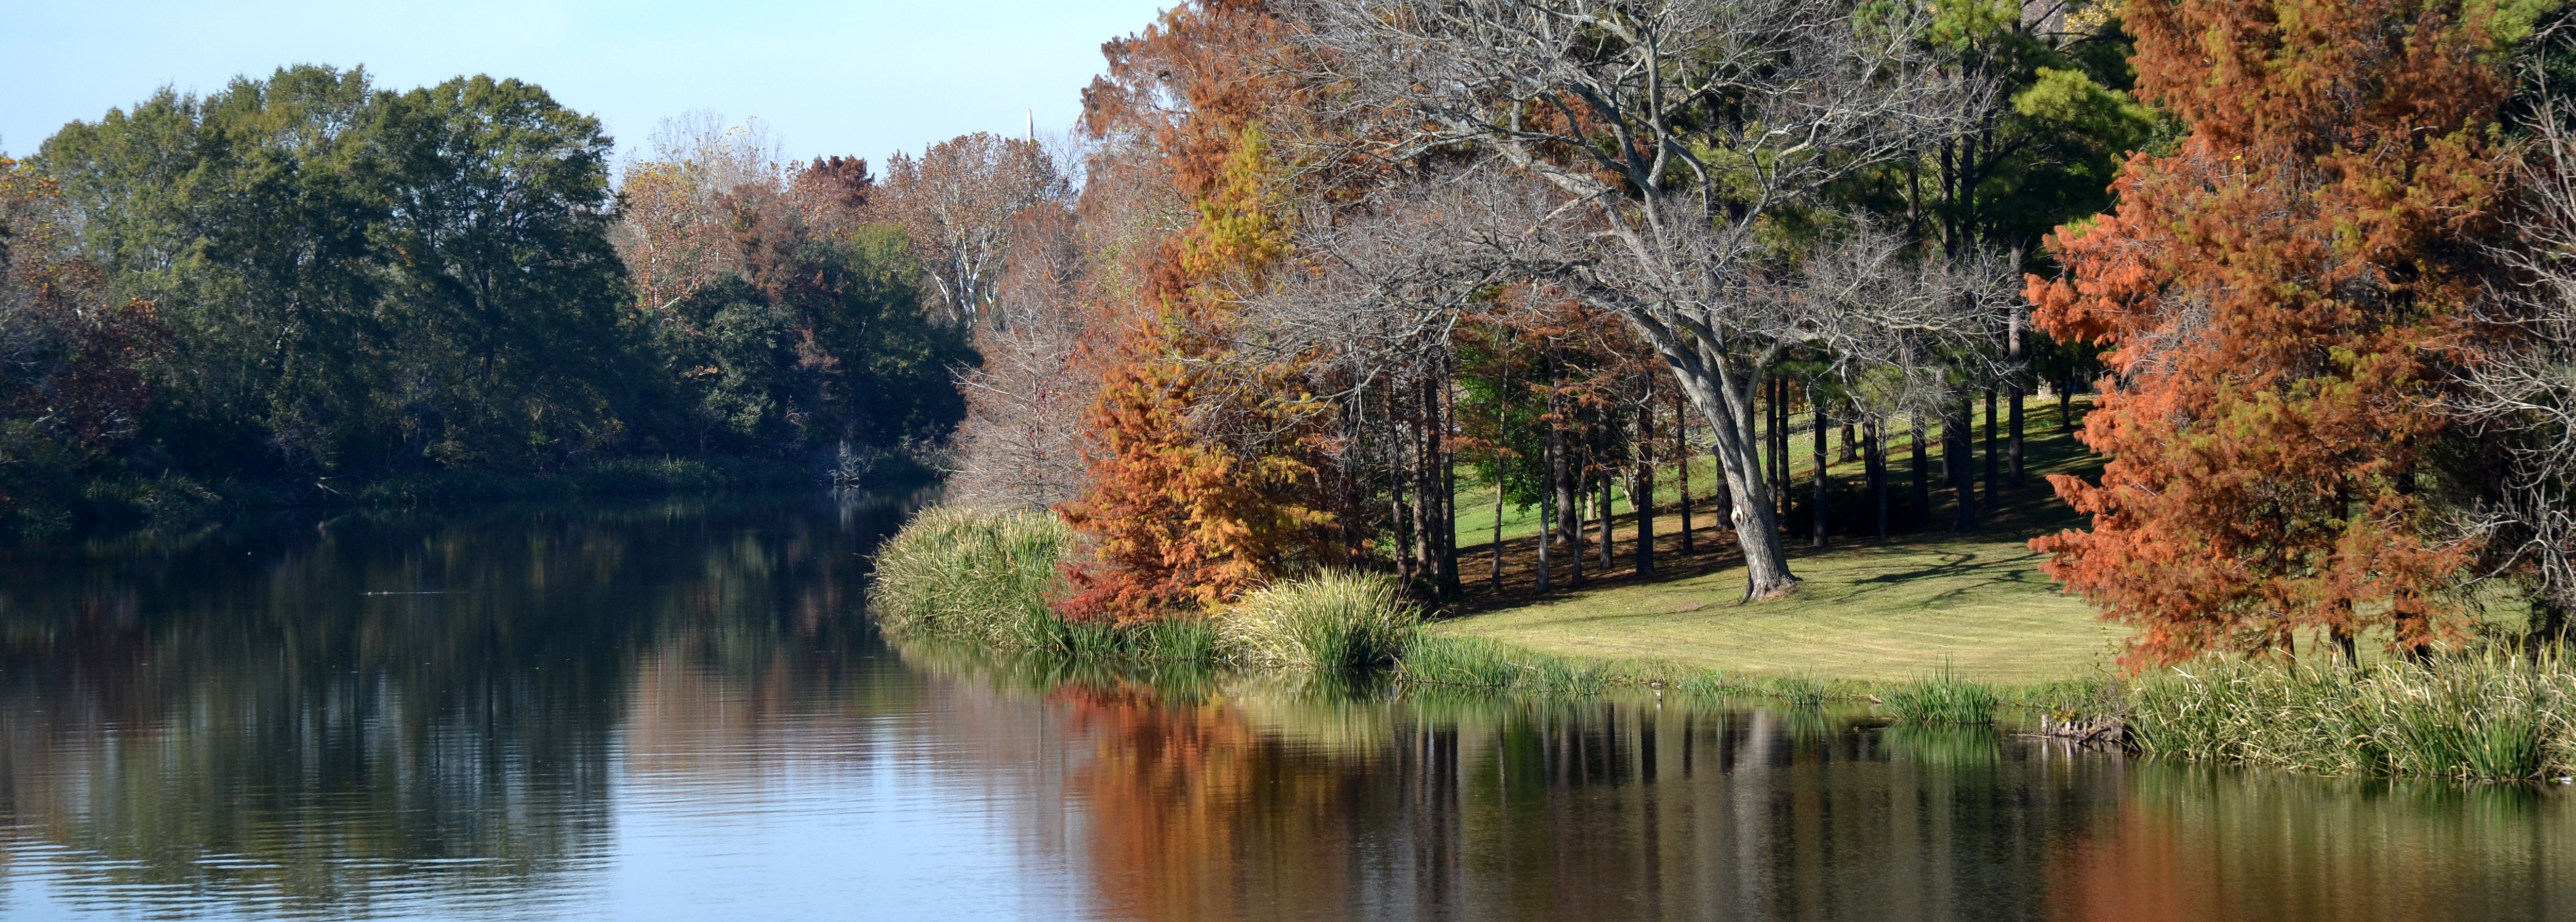 Cane river community - city of natchitoches